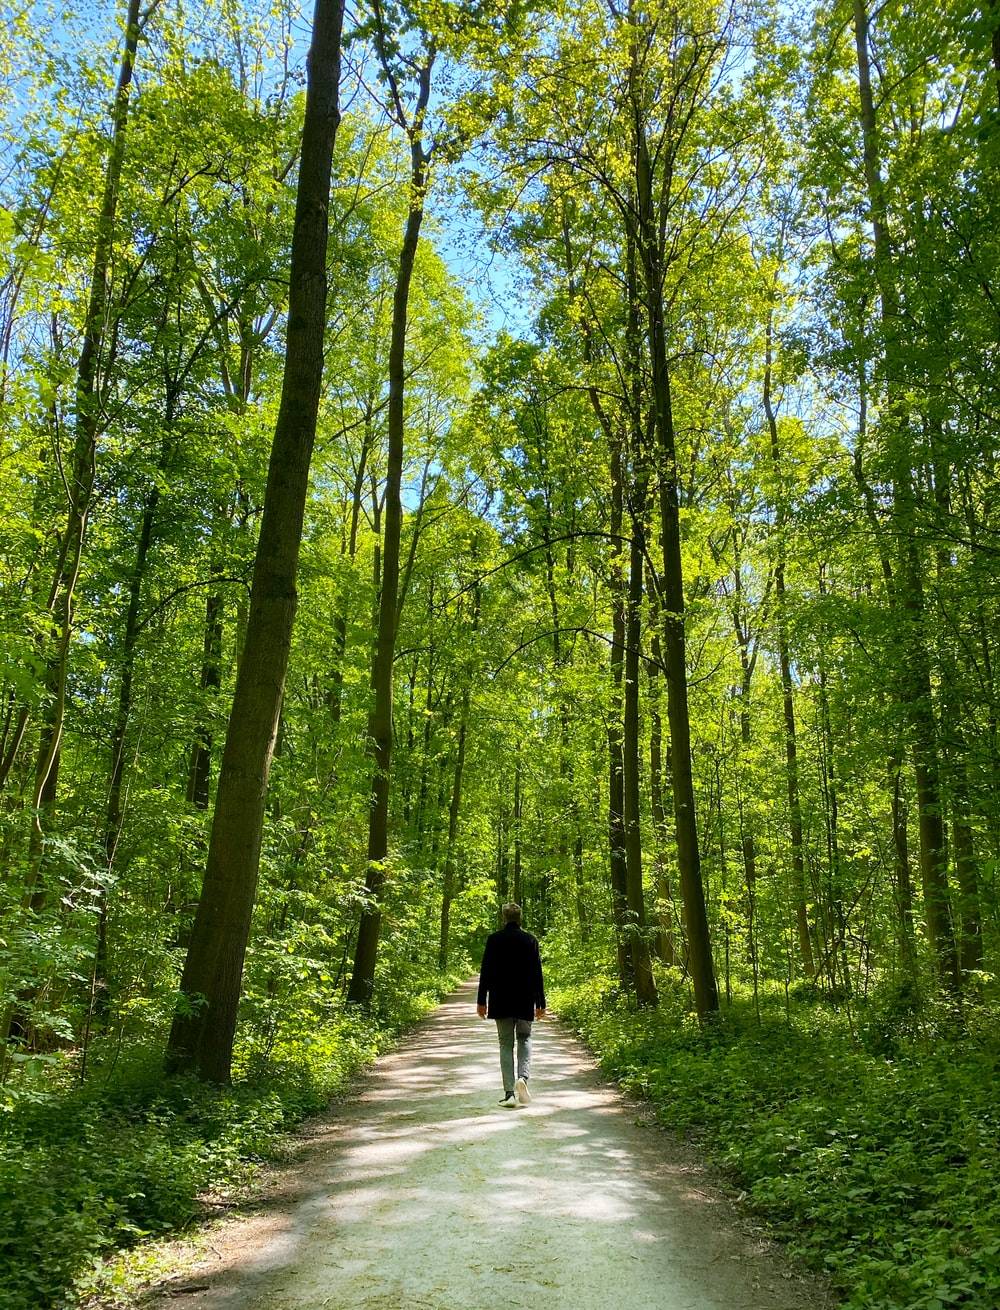 person walking on pathway in the middle of forest during daytime